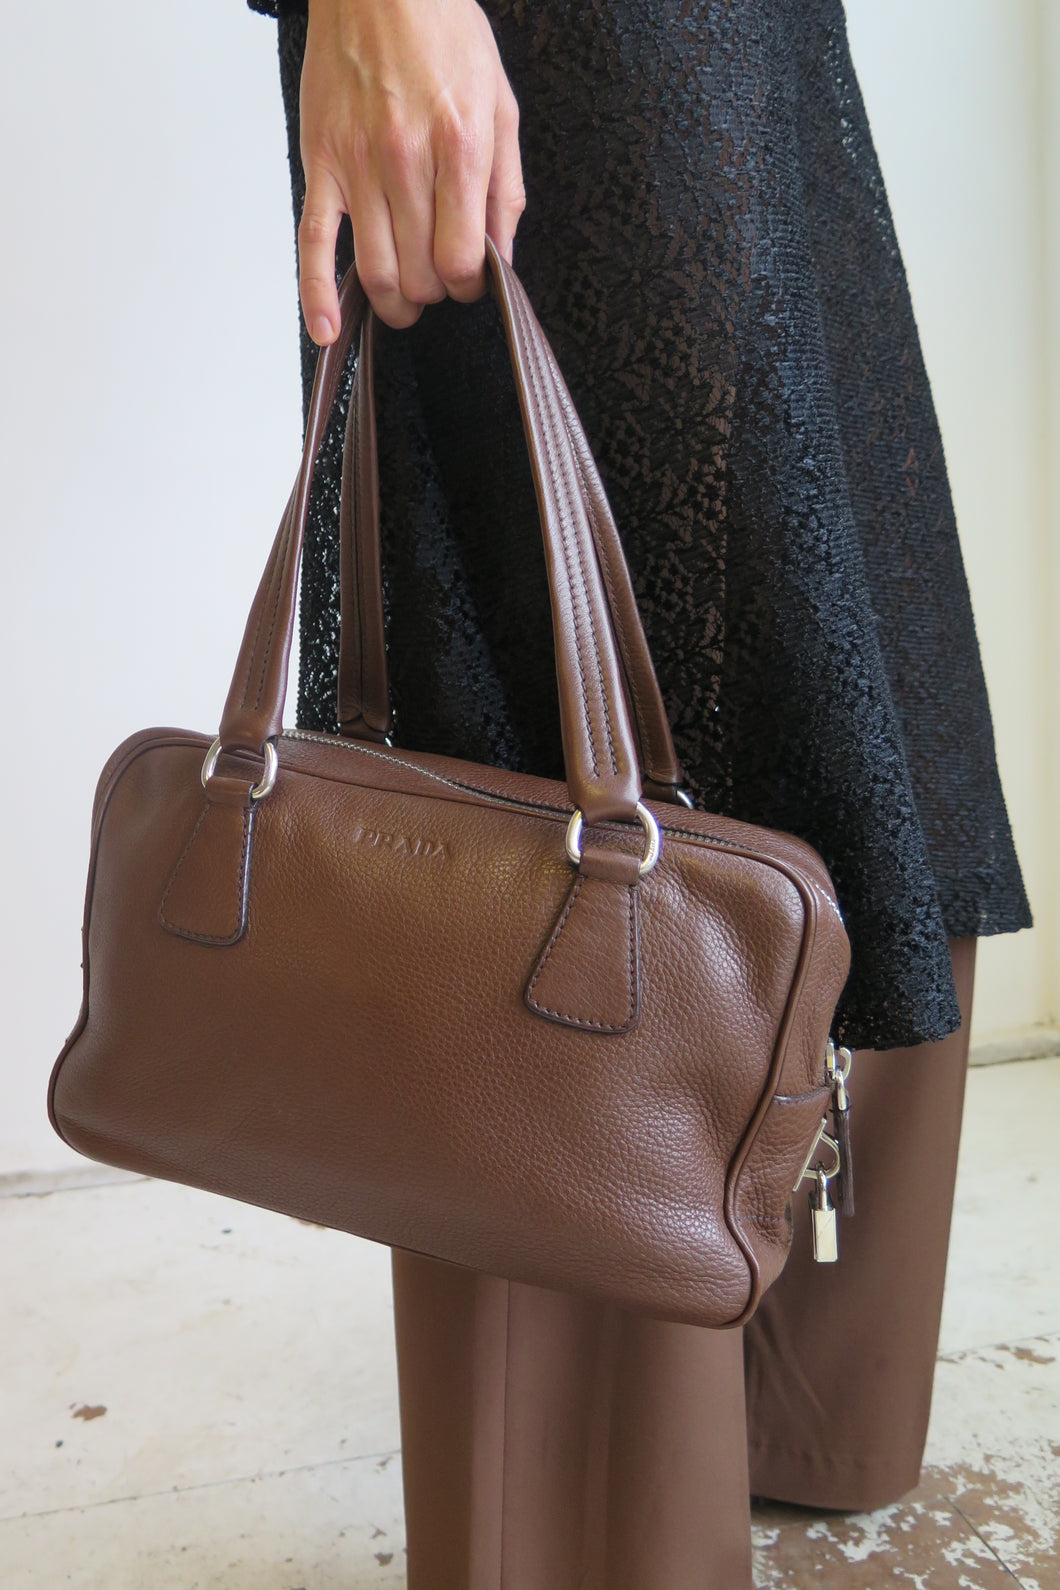 Prada Brown Leather Bowling Shape Bag - Studio Travel